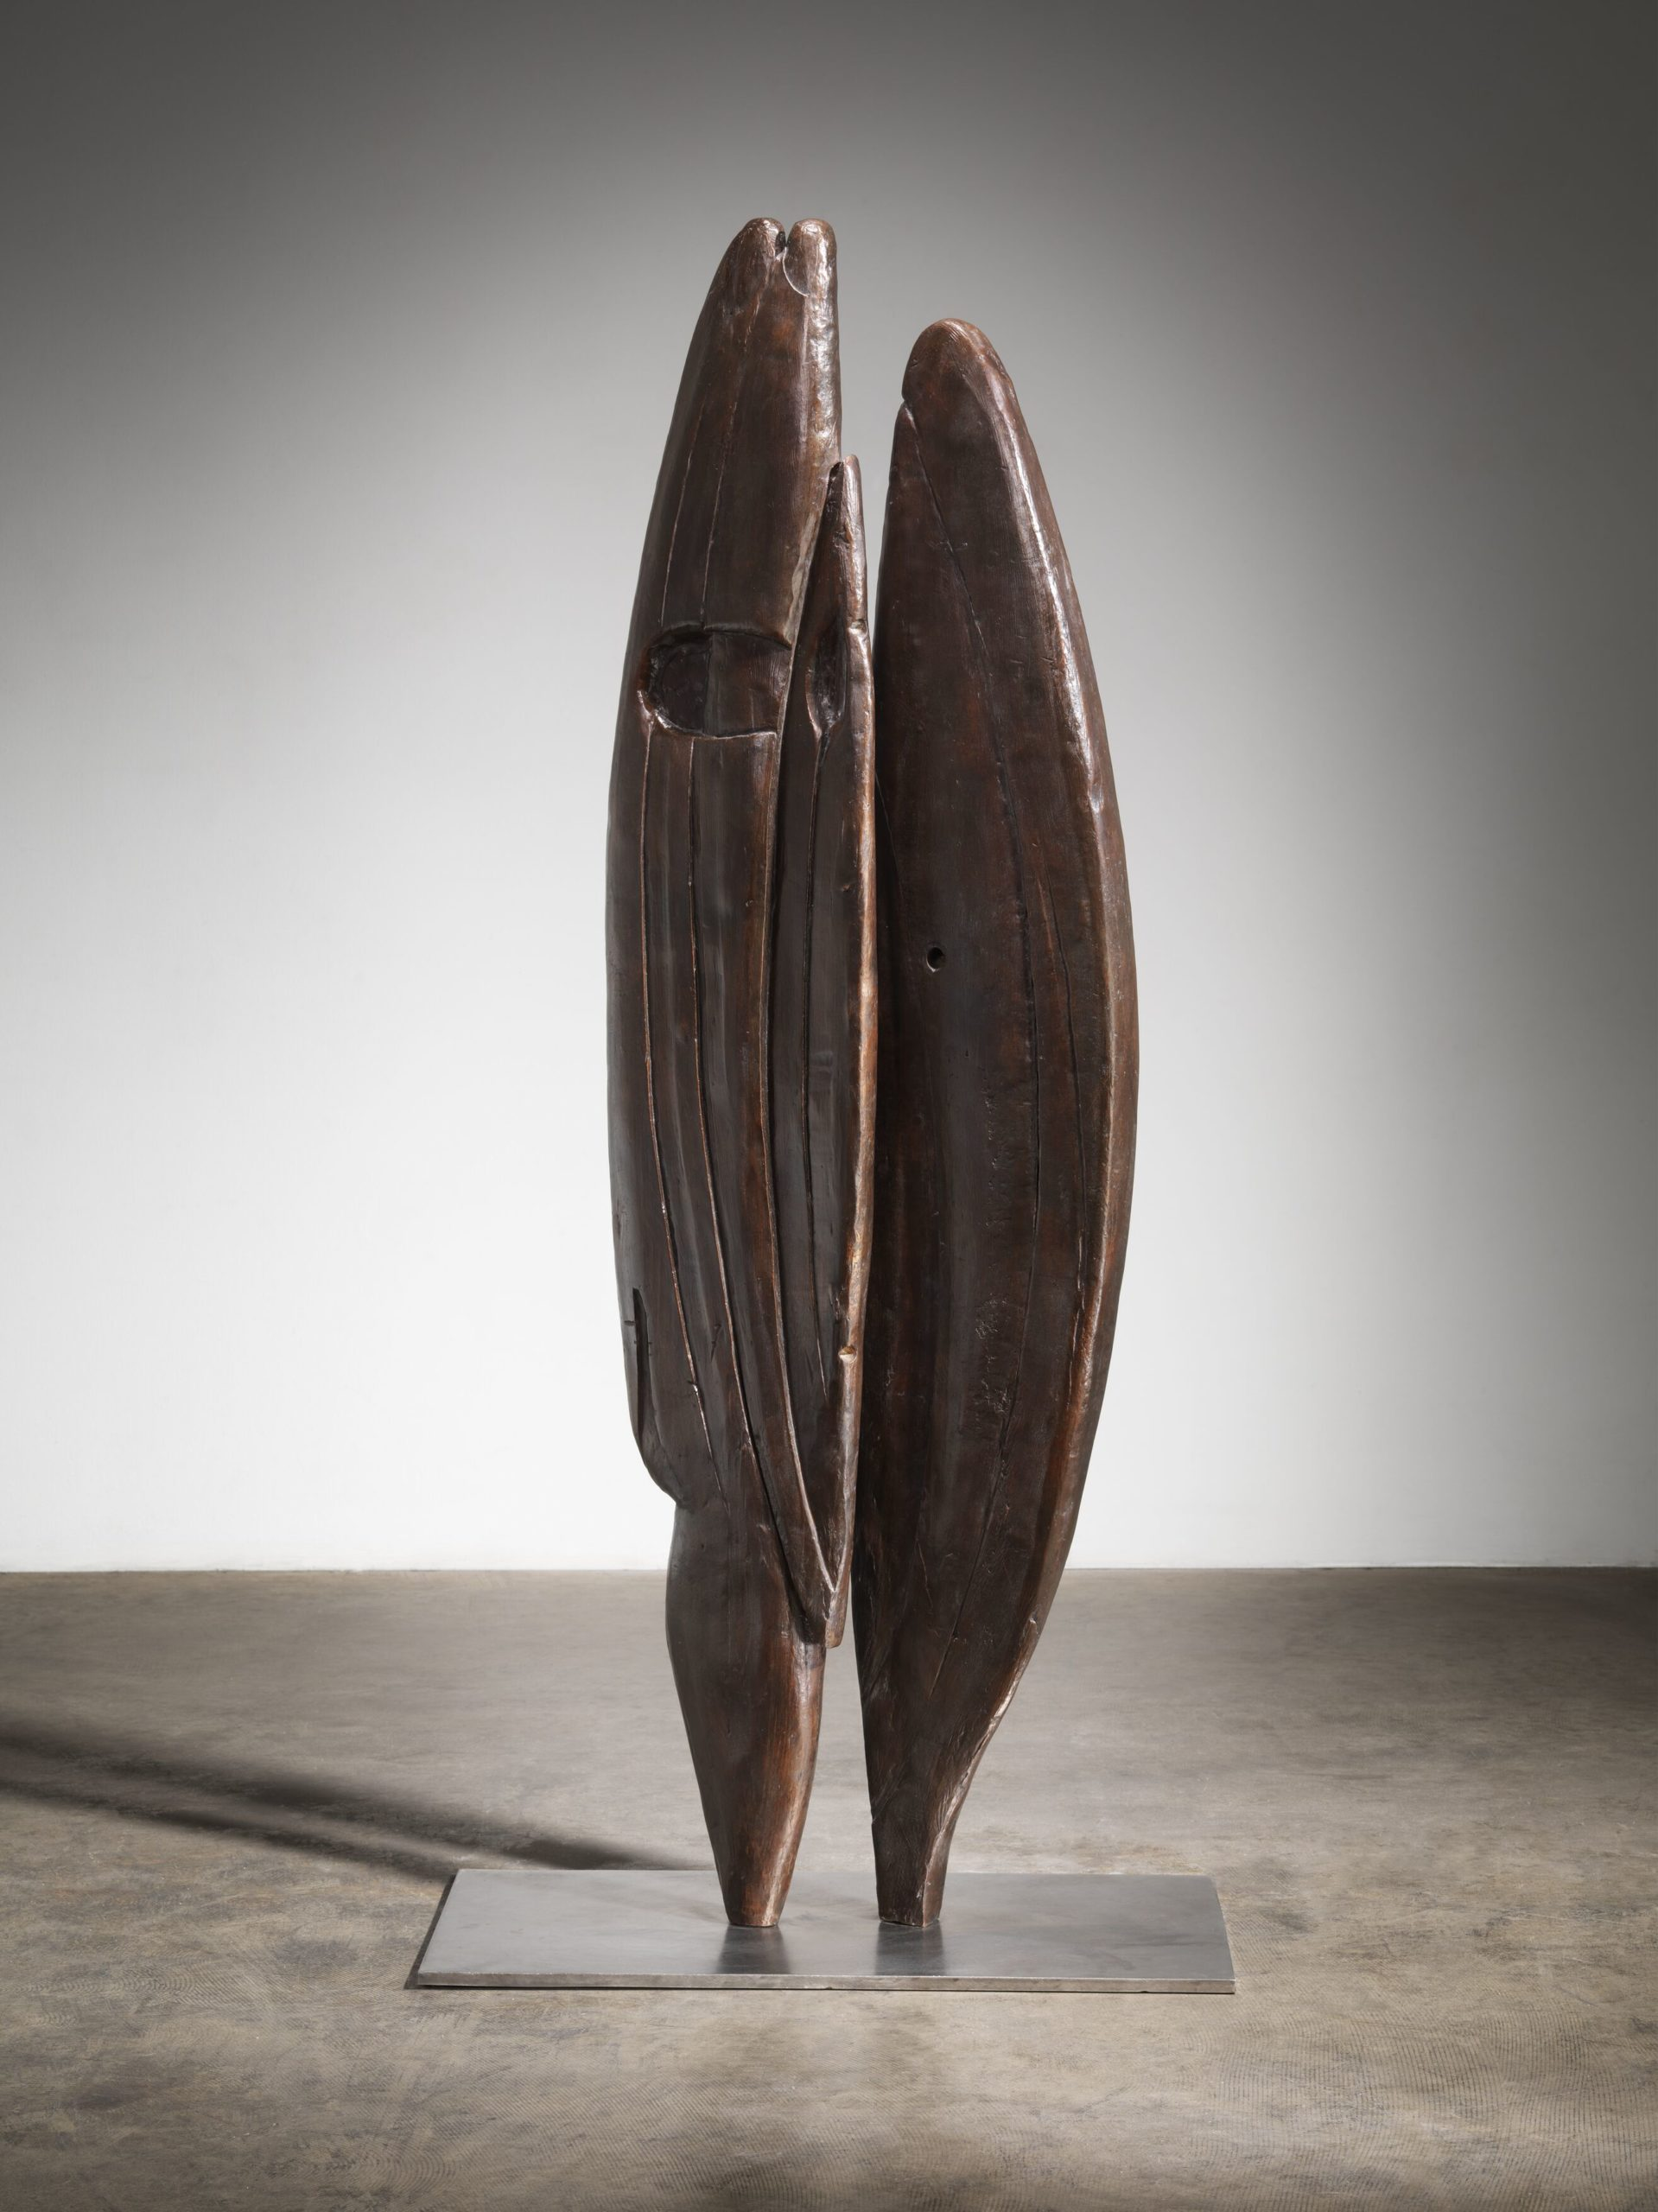 Louise Bourgeois  Brother & Sister 1949 Bronze and stainless steel  165.7 x 76.2 x 43.2 cm / 65 1/4 x 30 x 17 in Photo: Christopher Burke © The Easton Foundation / 2020, ProLitteris, Zurich Courtesy The Easton Foundation and Hauser & Wirth